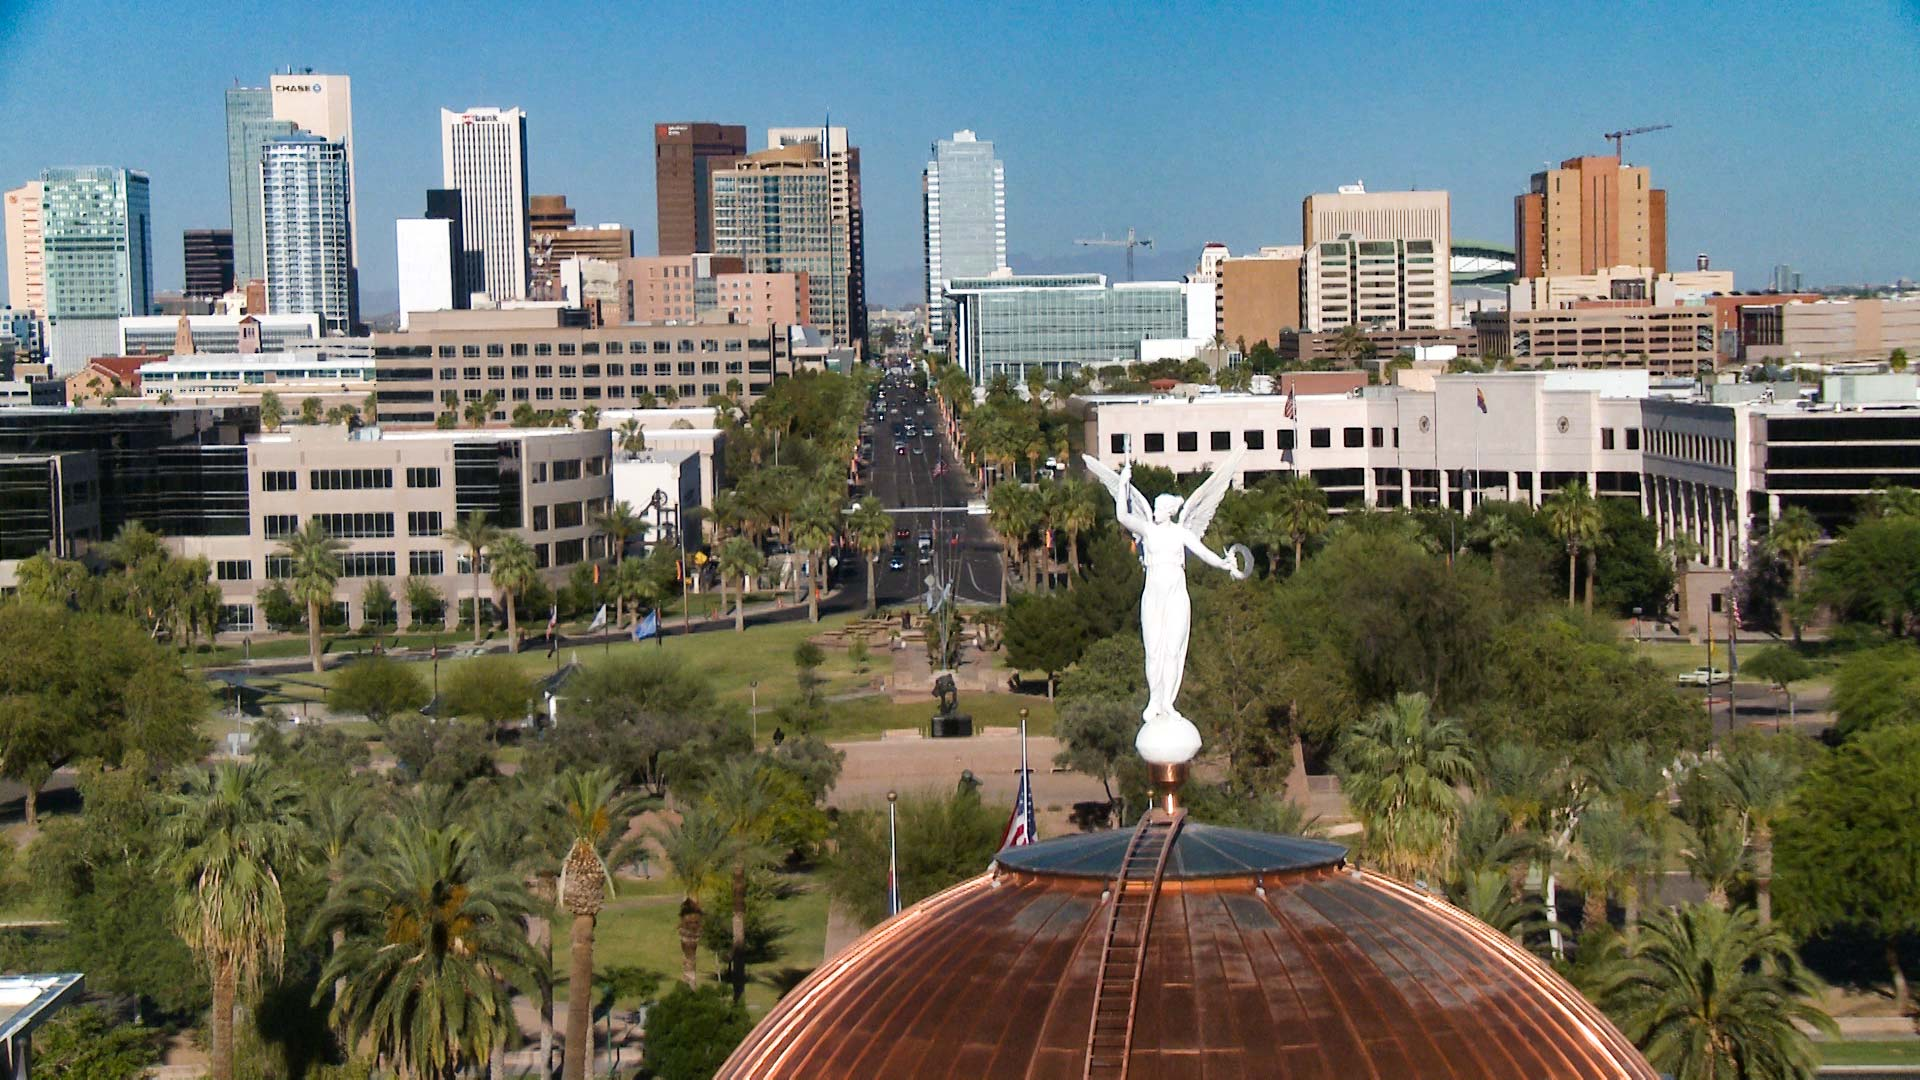 A view of downtown Phoenix from the top of the Capitol dome.